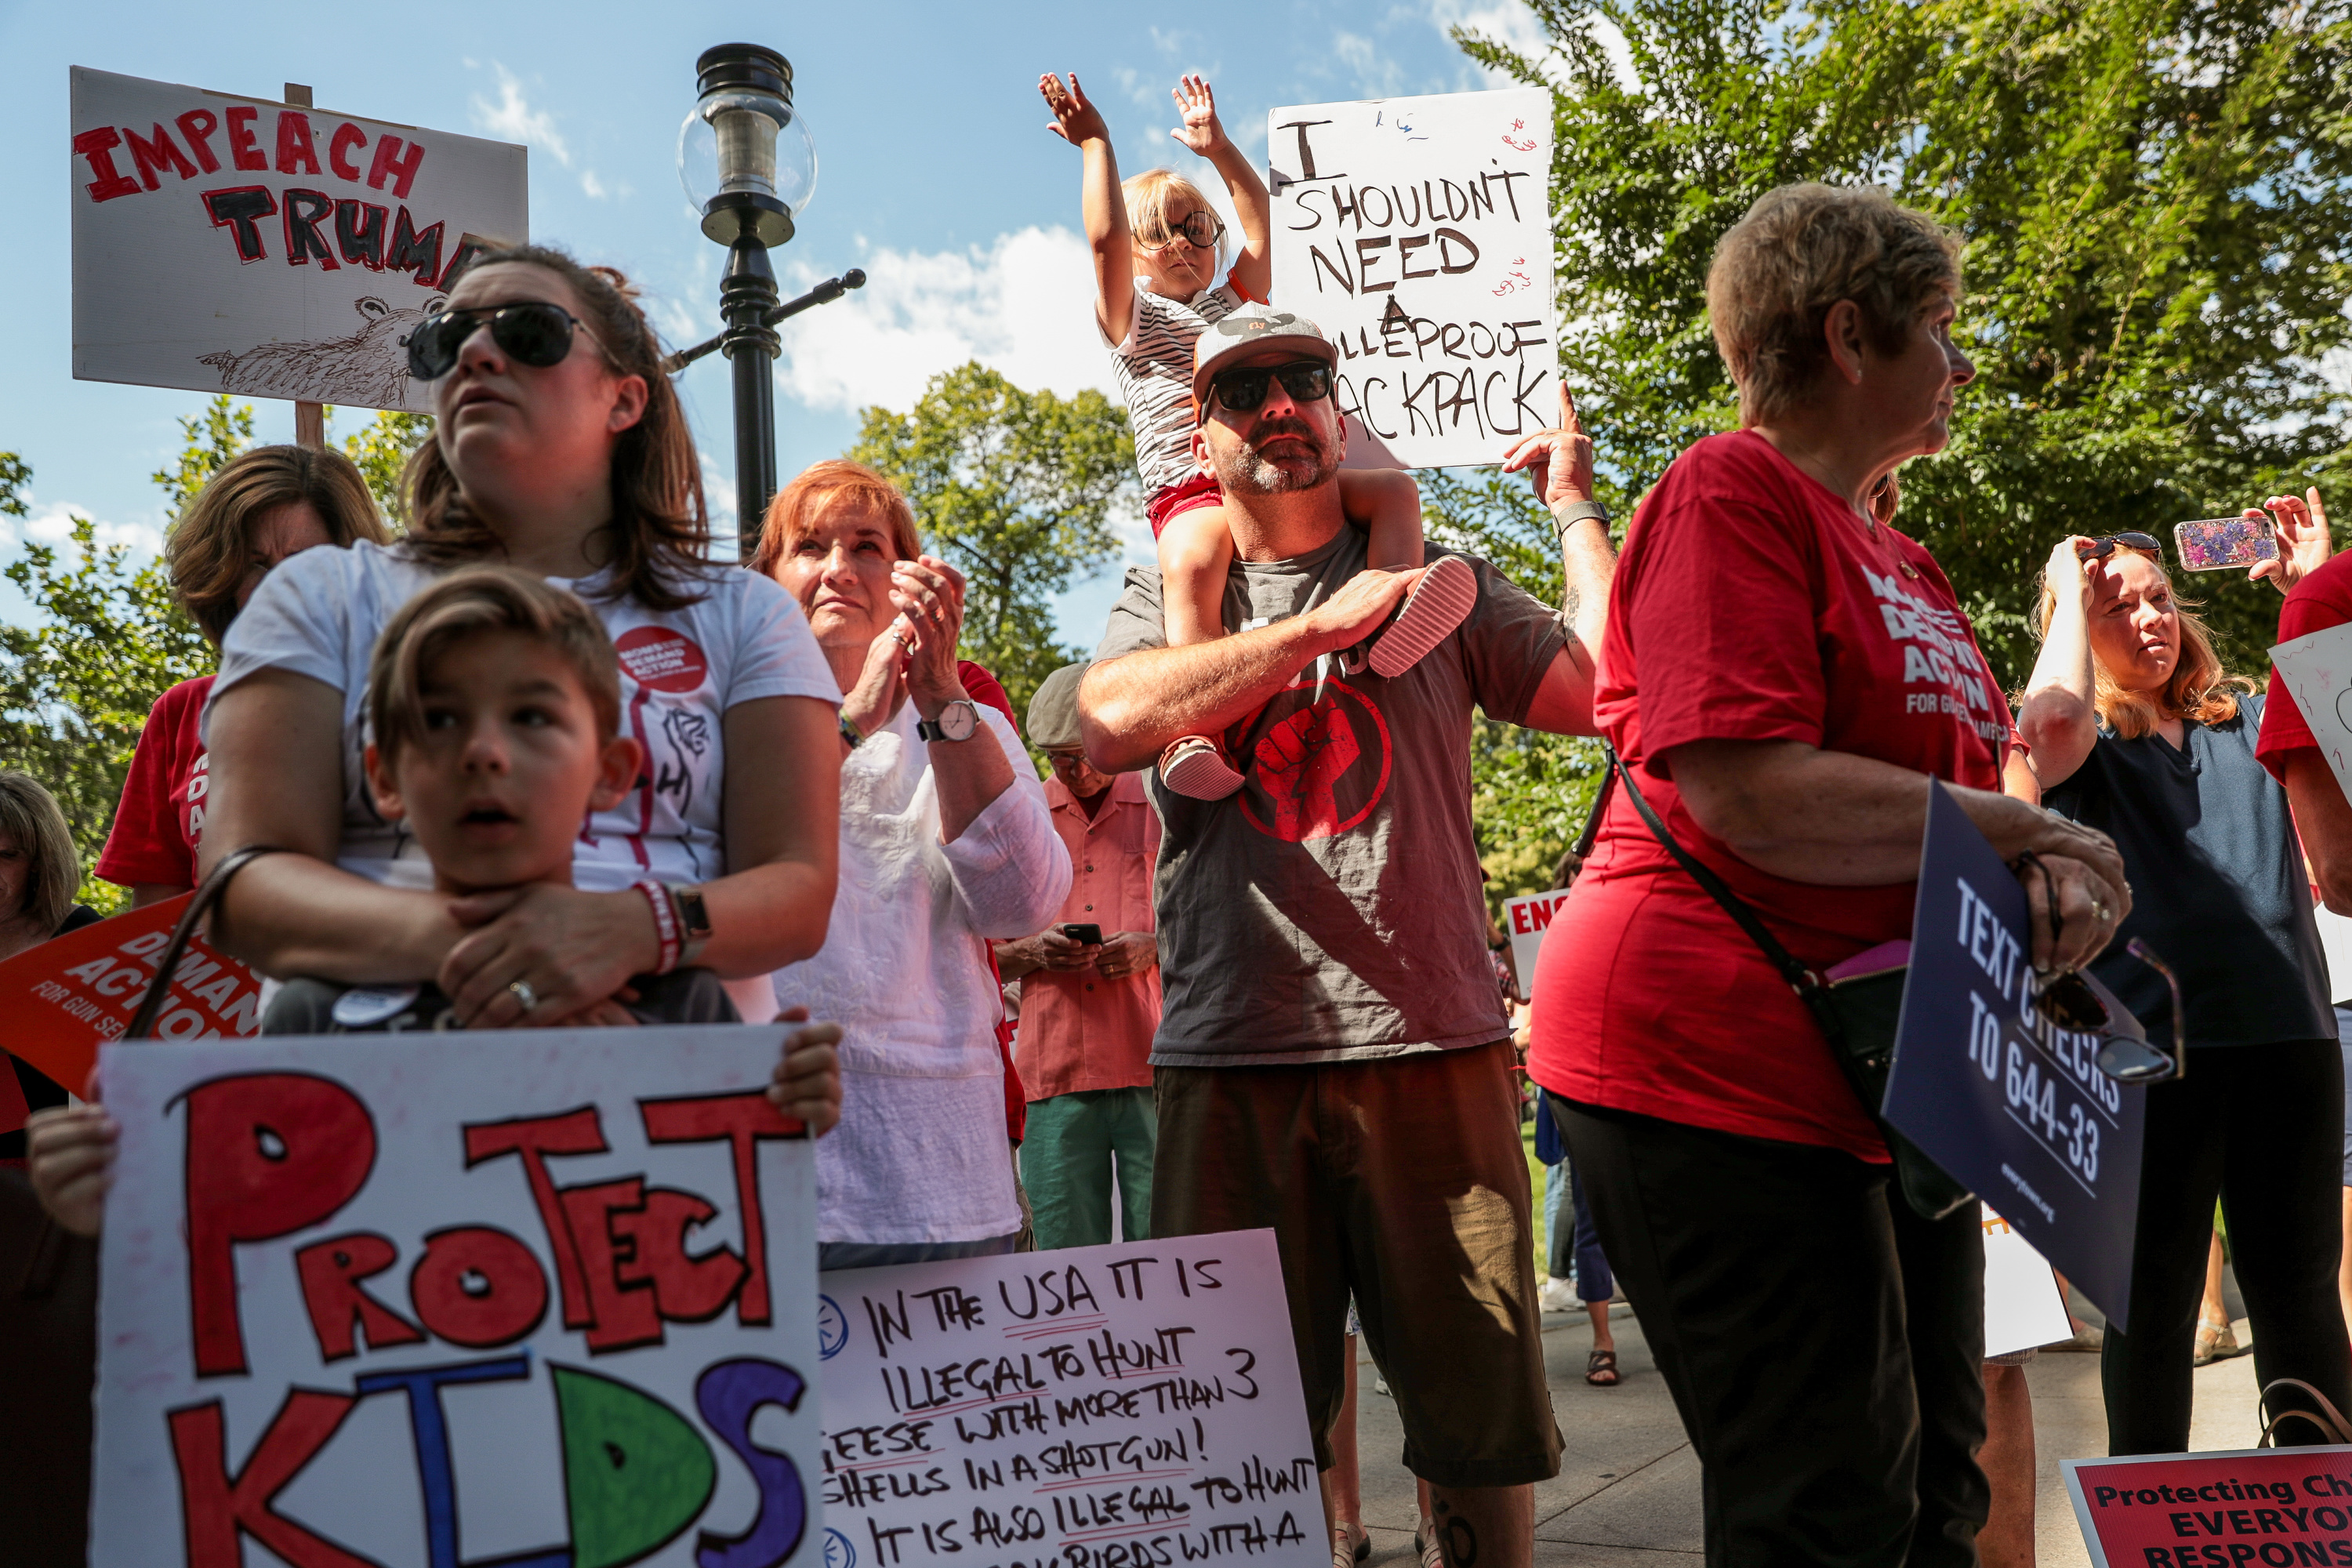 Matt Hewitt, of Sandy, holds his daughter, Elliott, 3, on his shoulders while attending a rally for stronger gun control laws at the Salt Lake City-County Building in Salt Lake City on Saturday, Aug. 17, 2019. At left is Hewitt's wife, Hillary, their son, Van, 6, and Hillary's mother, Cheryl Call.